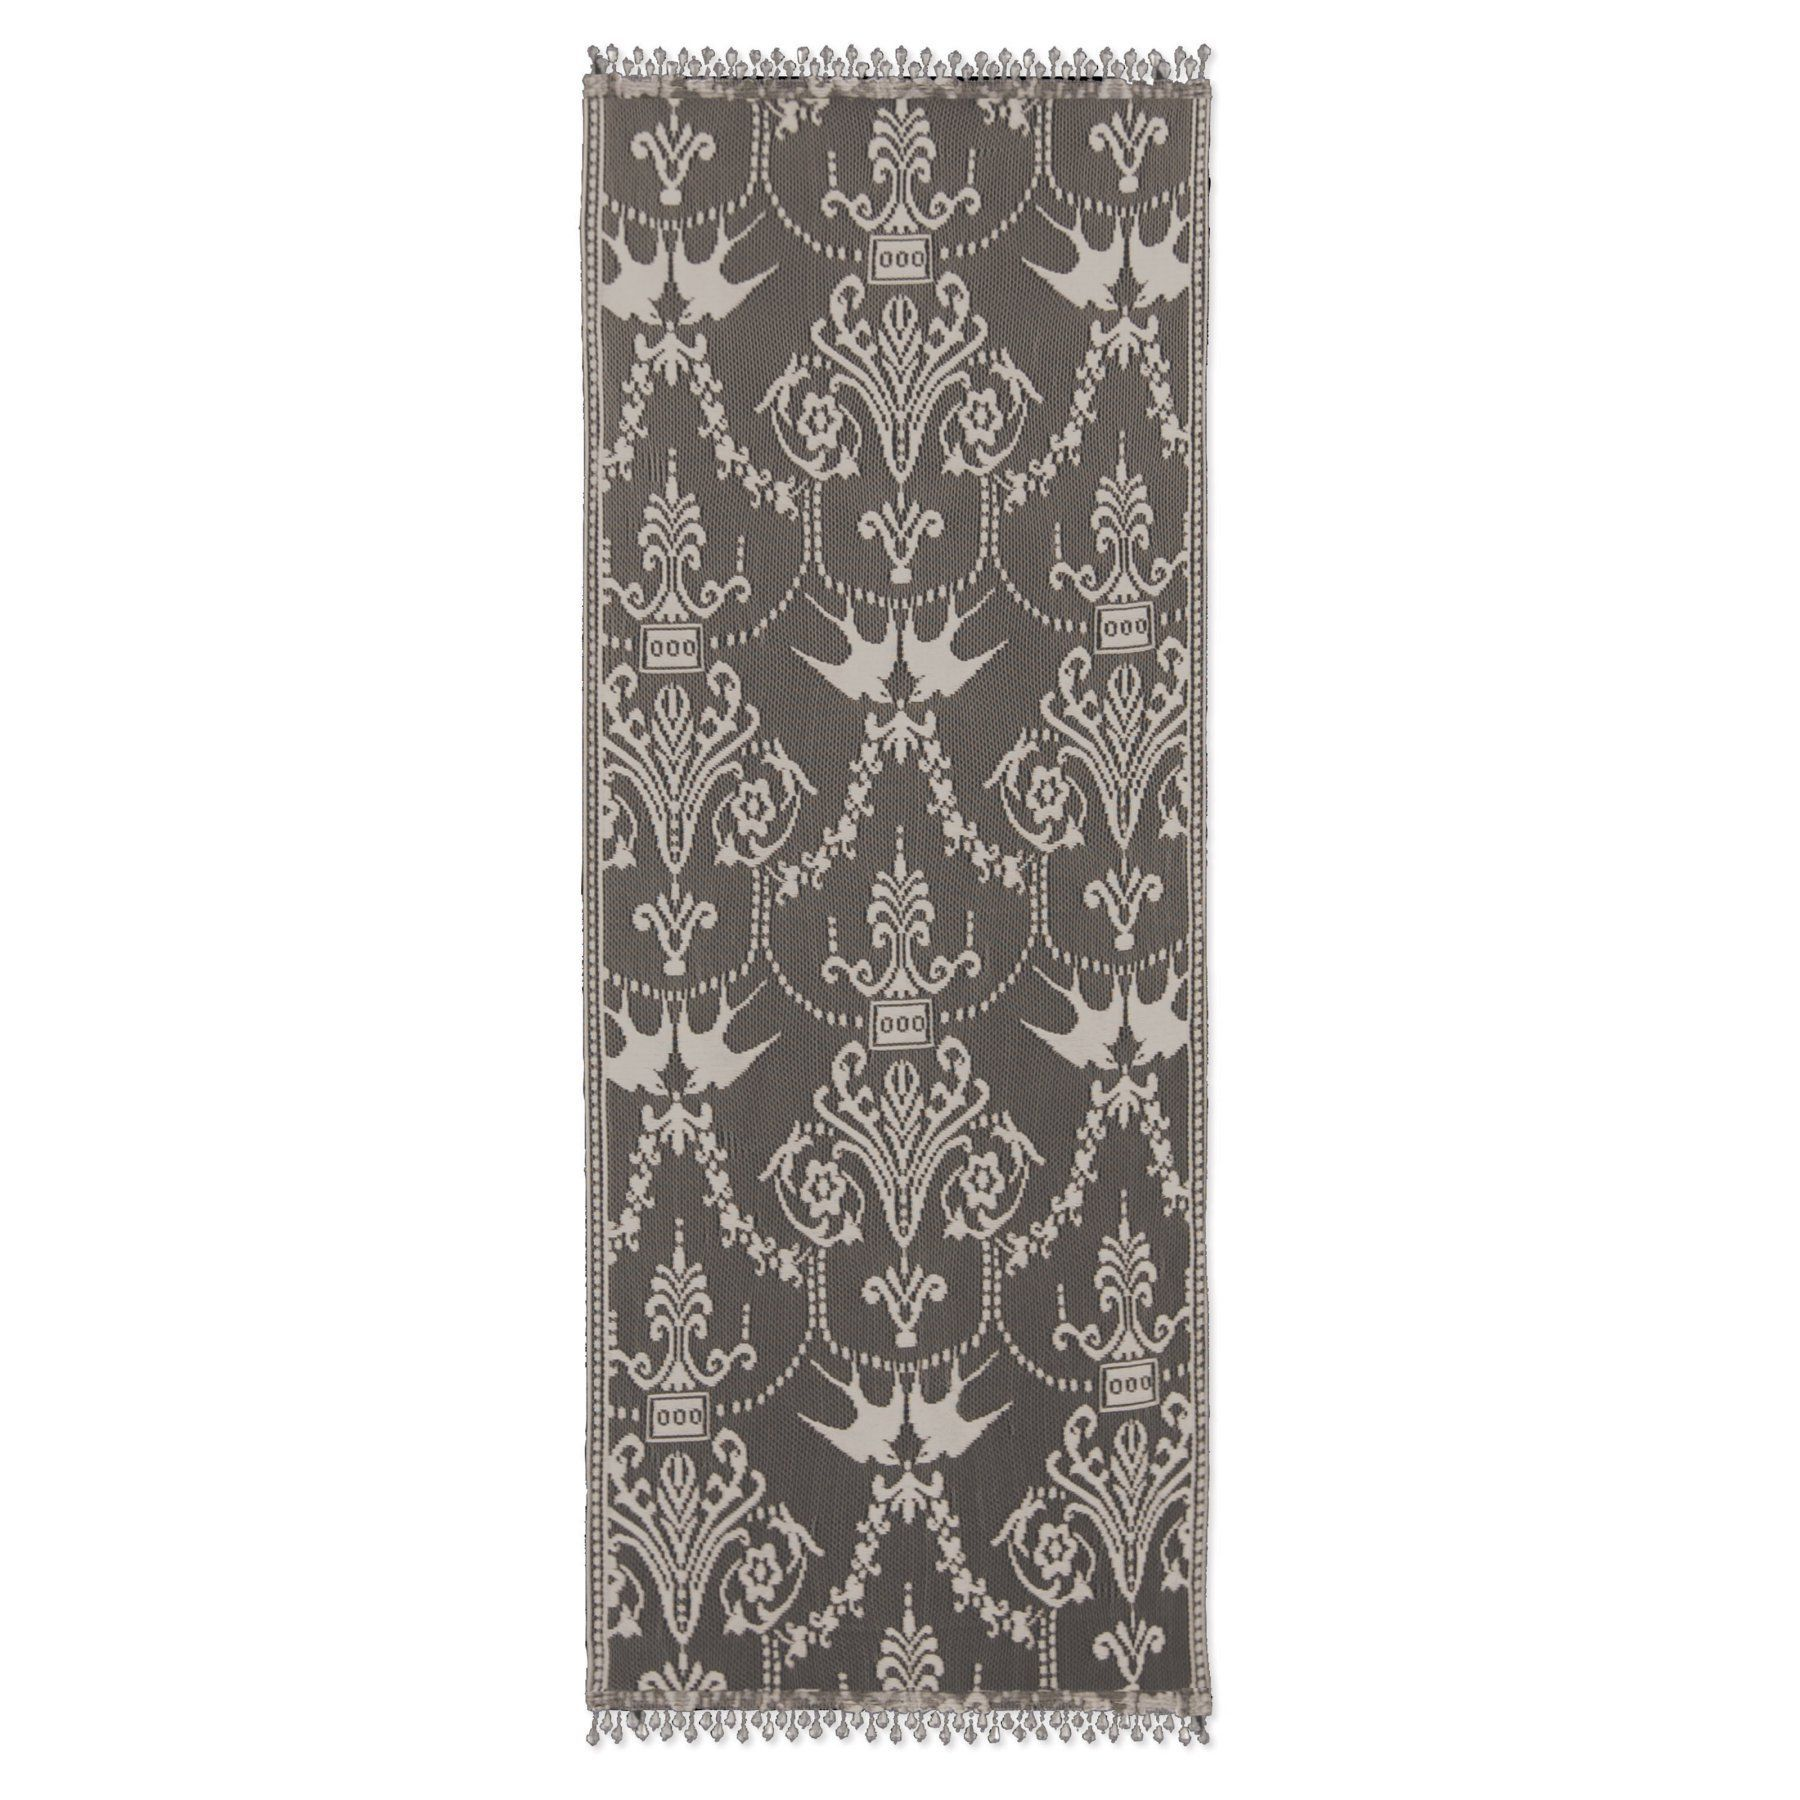 Downton Abbey By Heritage Lace Duchess Runner With Trim